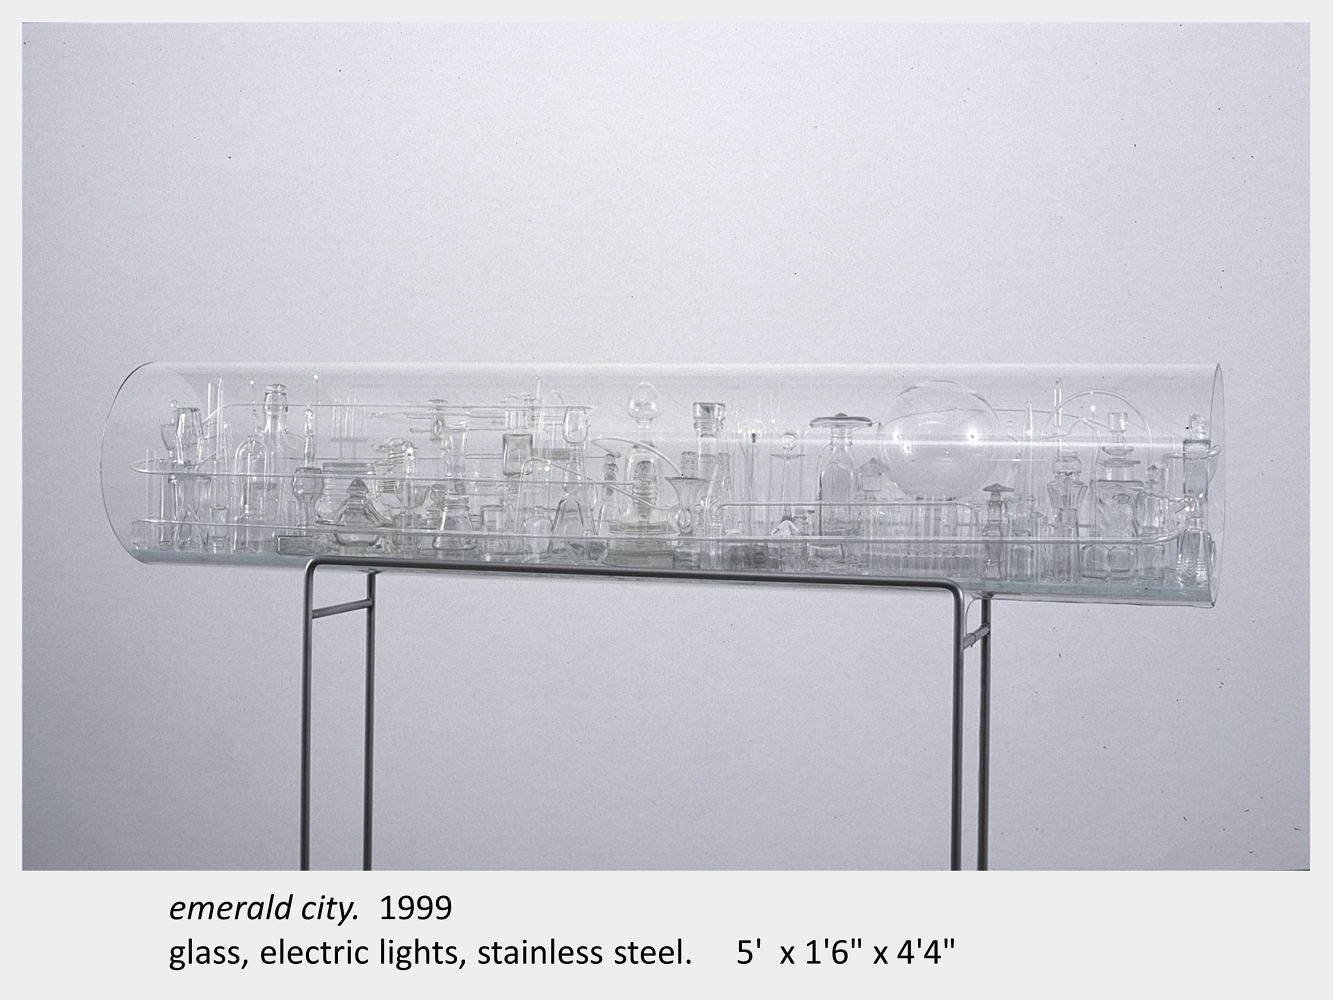 """Artwork by Lois Andison. Emerald city. 1999. glass, electric lights, stainless steel. 5'x 1'6"""" x 4'4"""""""